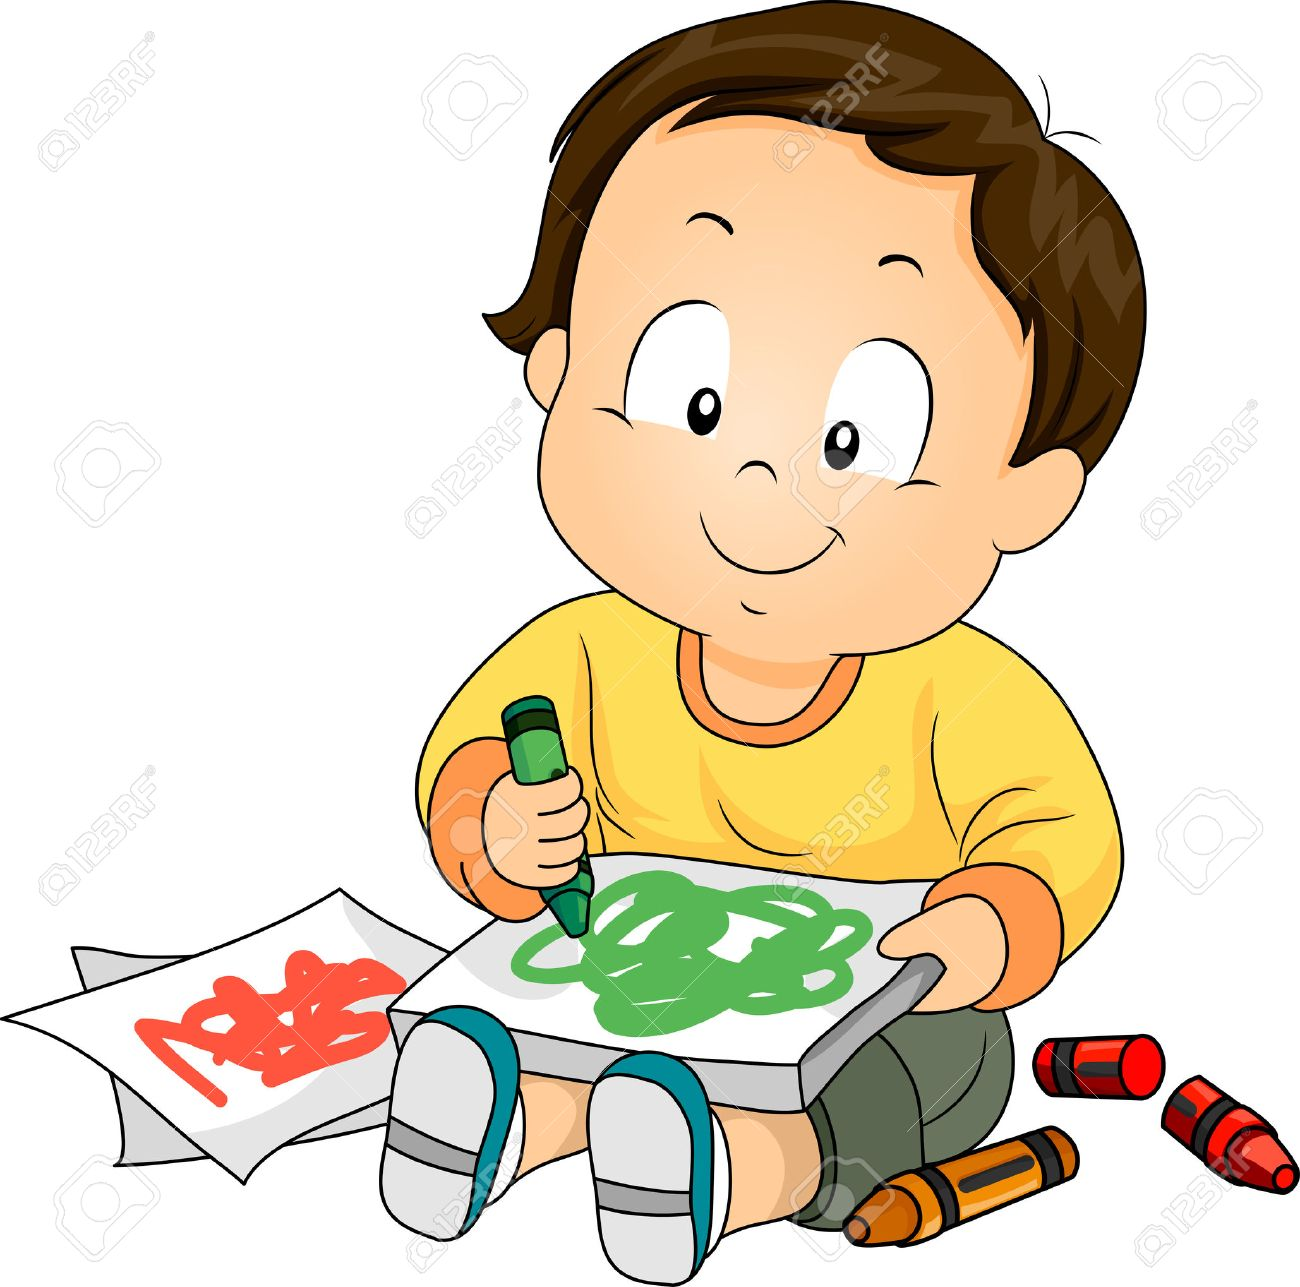 illustration of a baby boy drawing doodles with crayons stock photo